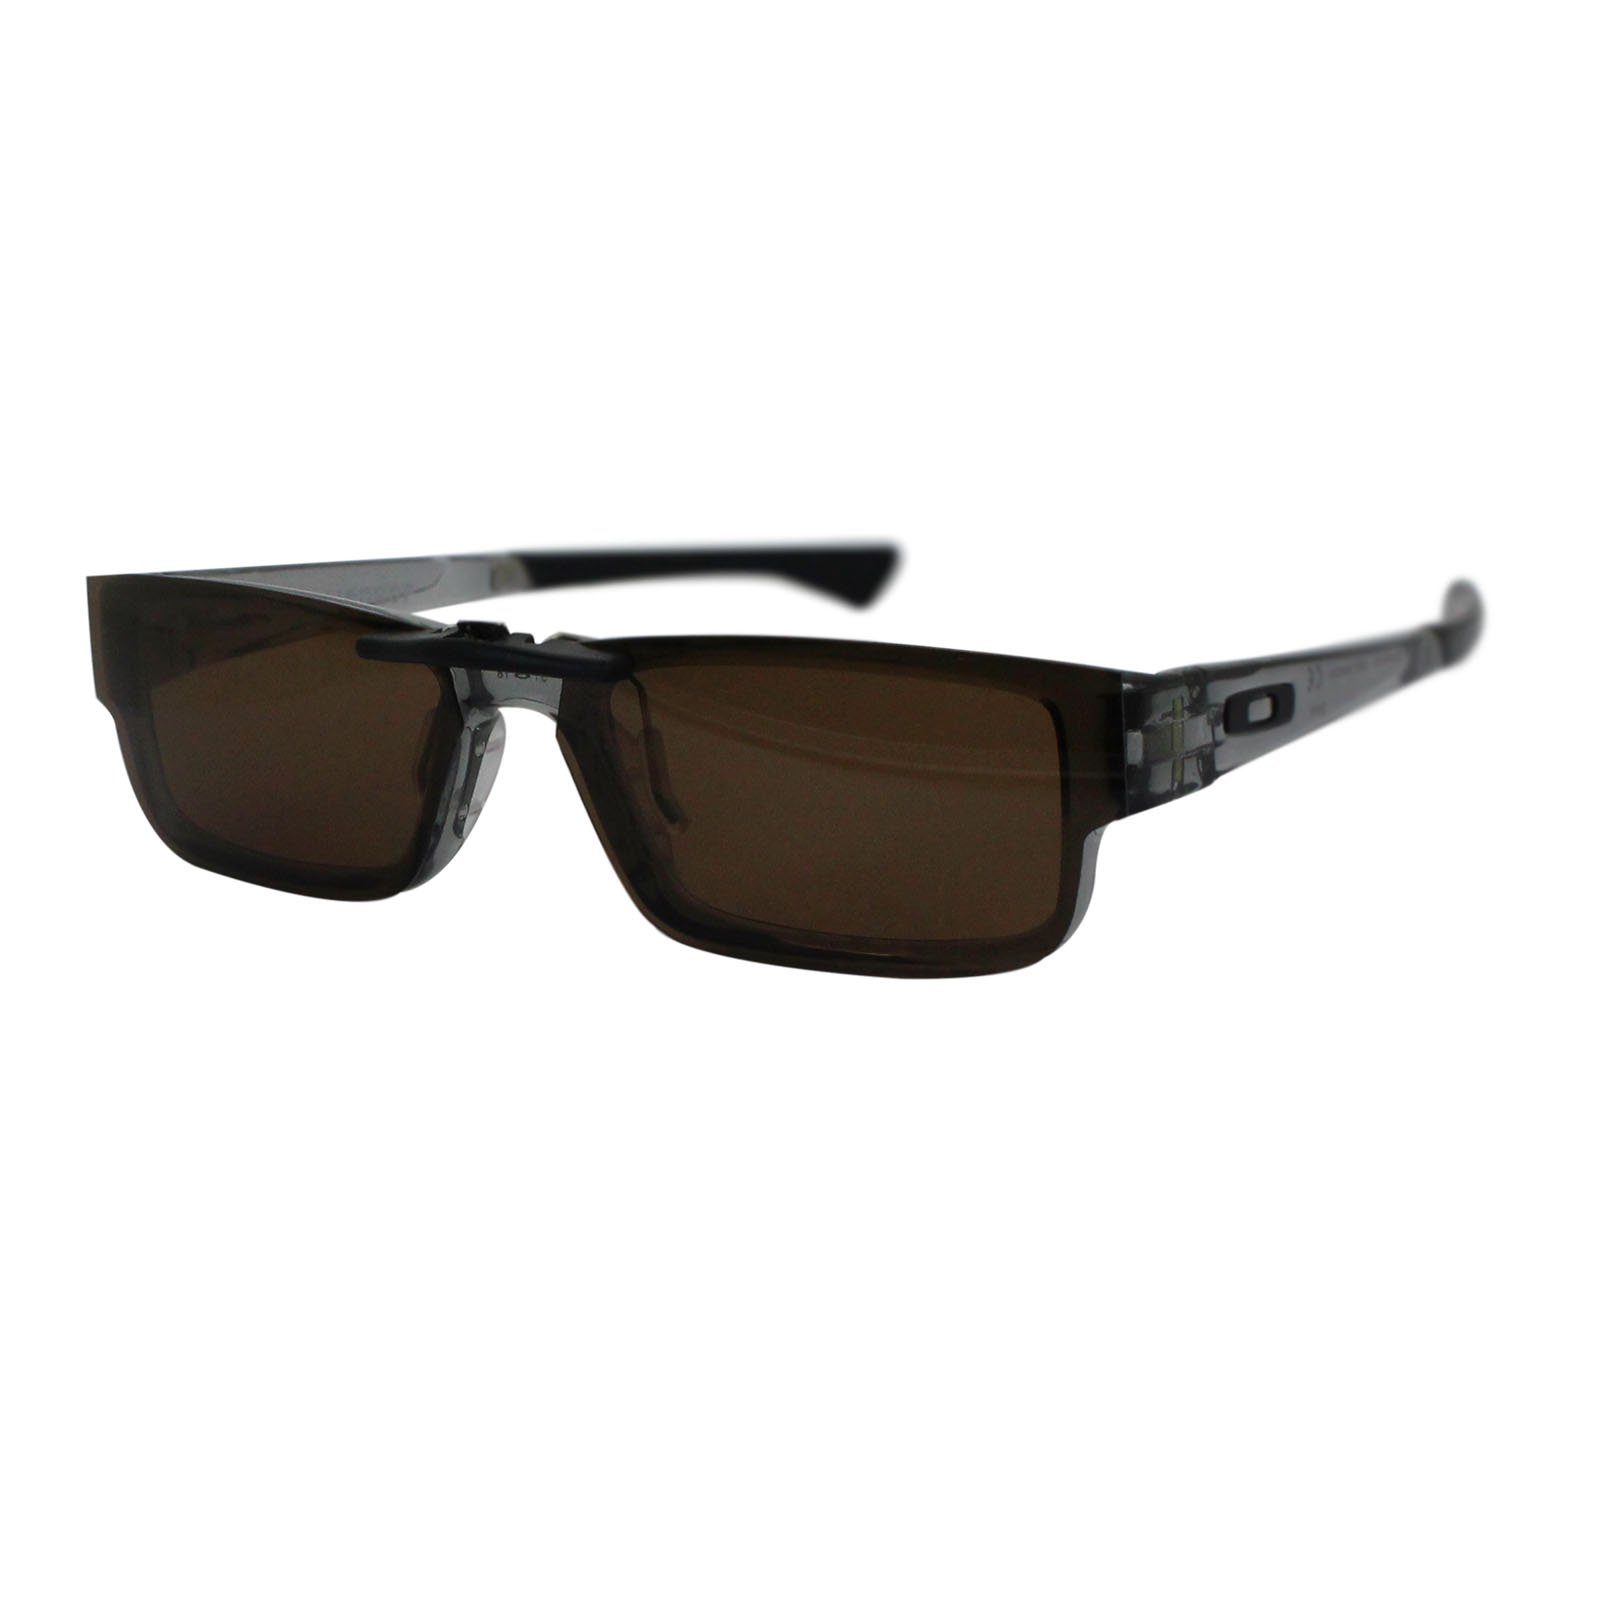 Custom Polarized Clip on Sunglasses For Oakley Airdrop 51 OX8046 51-18-143 (Brown) by oGeee (Image #5)